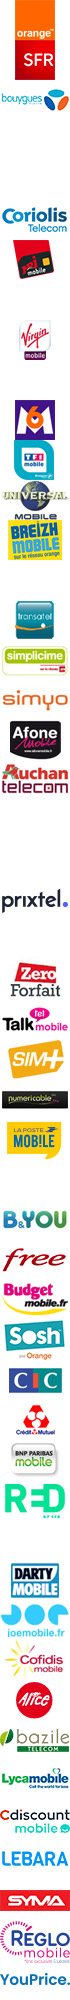 forfait CIC Mobile Prompto - 1Go illimit� Sans engagement